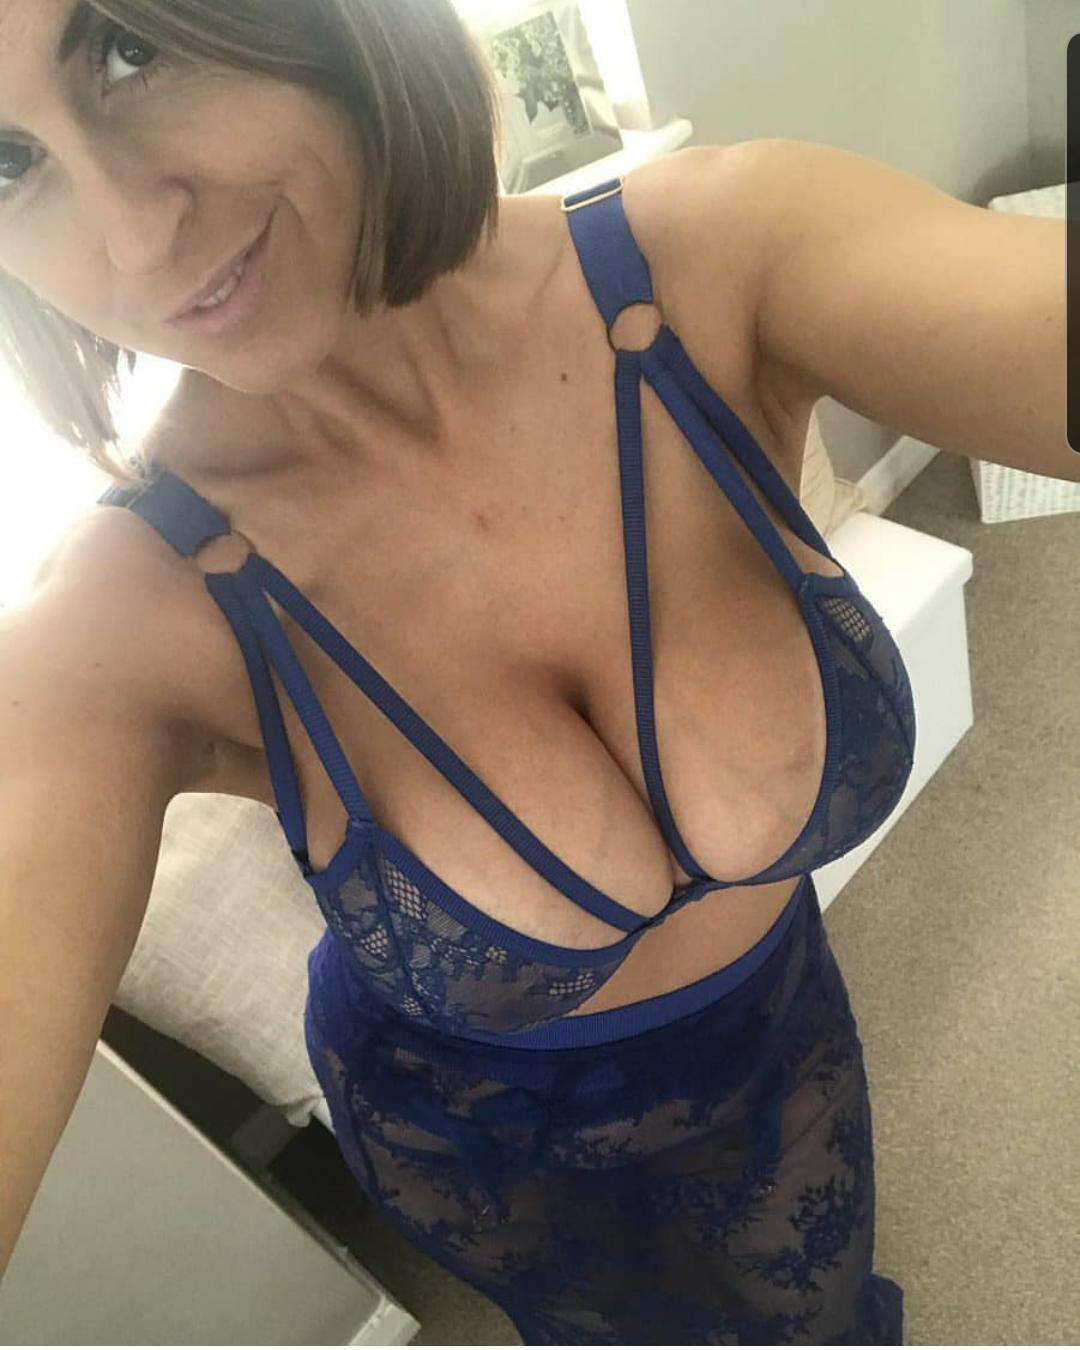 Sexy MILF takes non nude selfie while posing in hot lingerie. Hot and beautiful wife takes a self shot to capture her nice body in a erotic dress